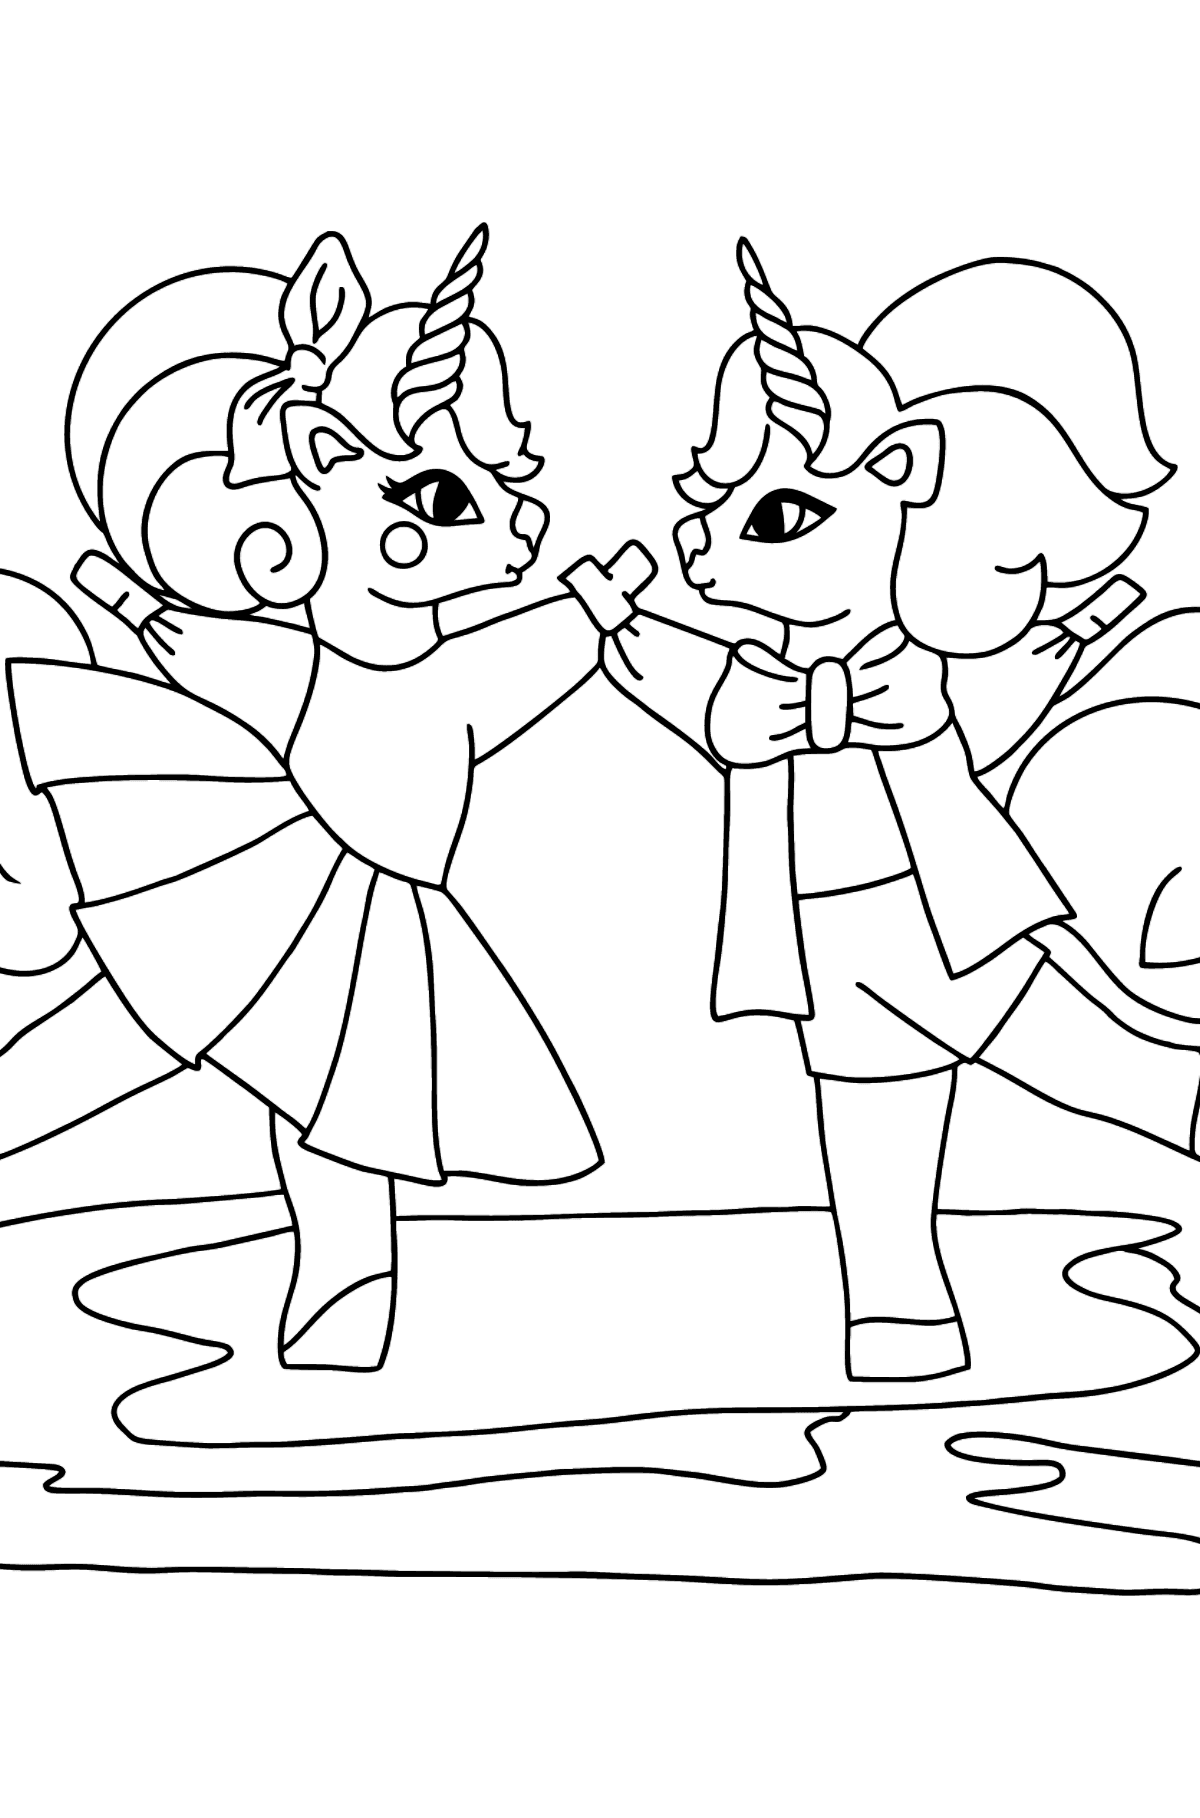 Coloring Page - A Dancing Unicorn - Coloring Pages for Kids